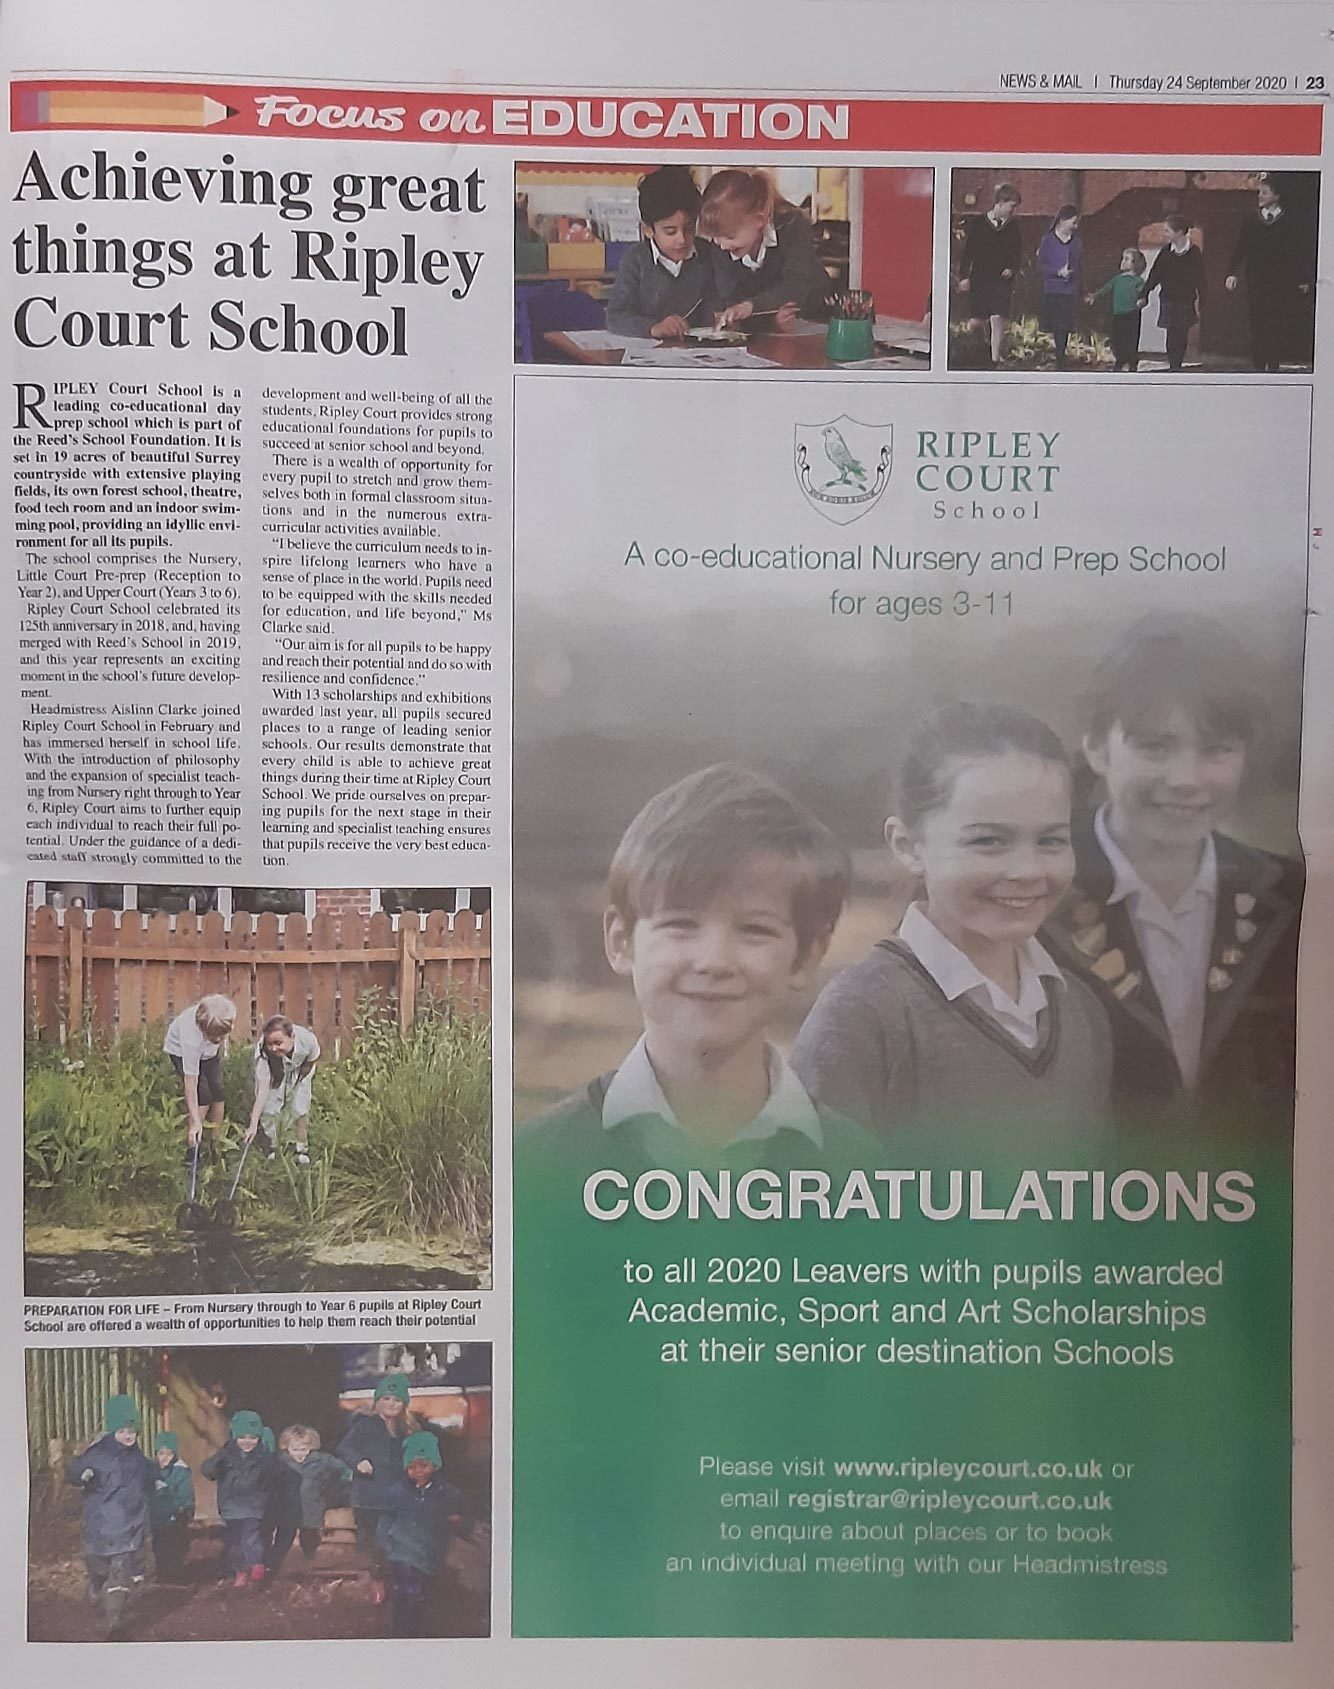 Woking News & Mail Editorial about Ripley Court